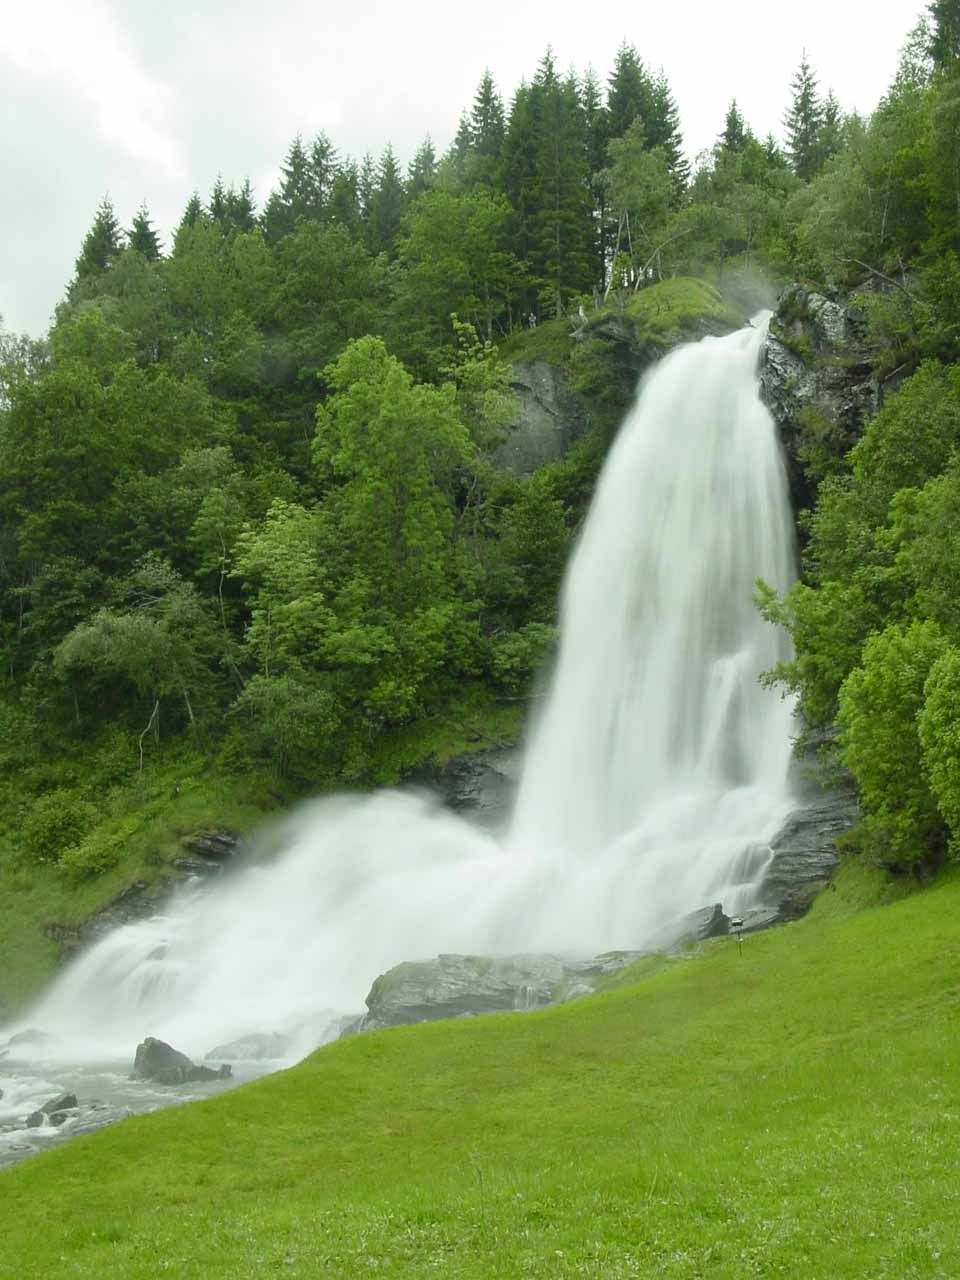 About 24km east of Fossen Bratte on the Fylkesvei 7 (which later became the Motorvei 7 or Mv7) was the popular Steinsdalsfossen